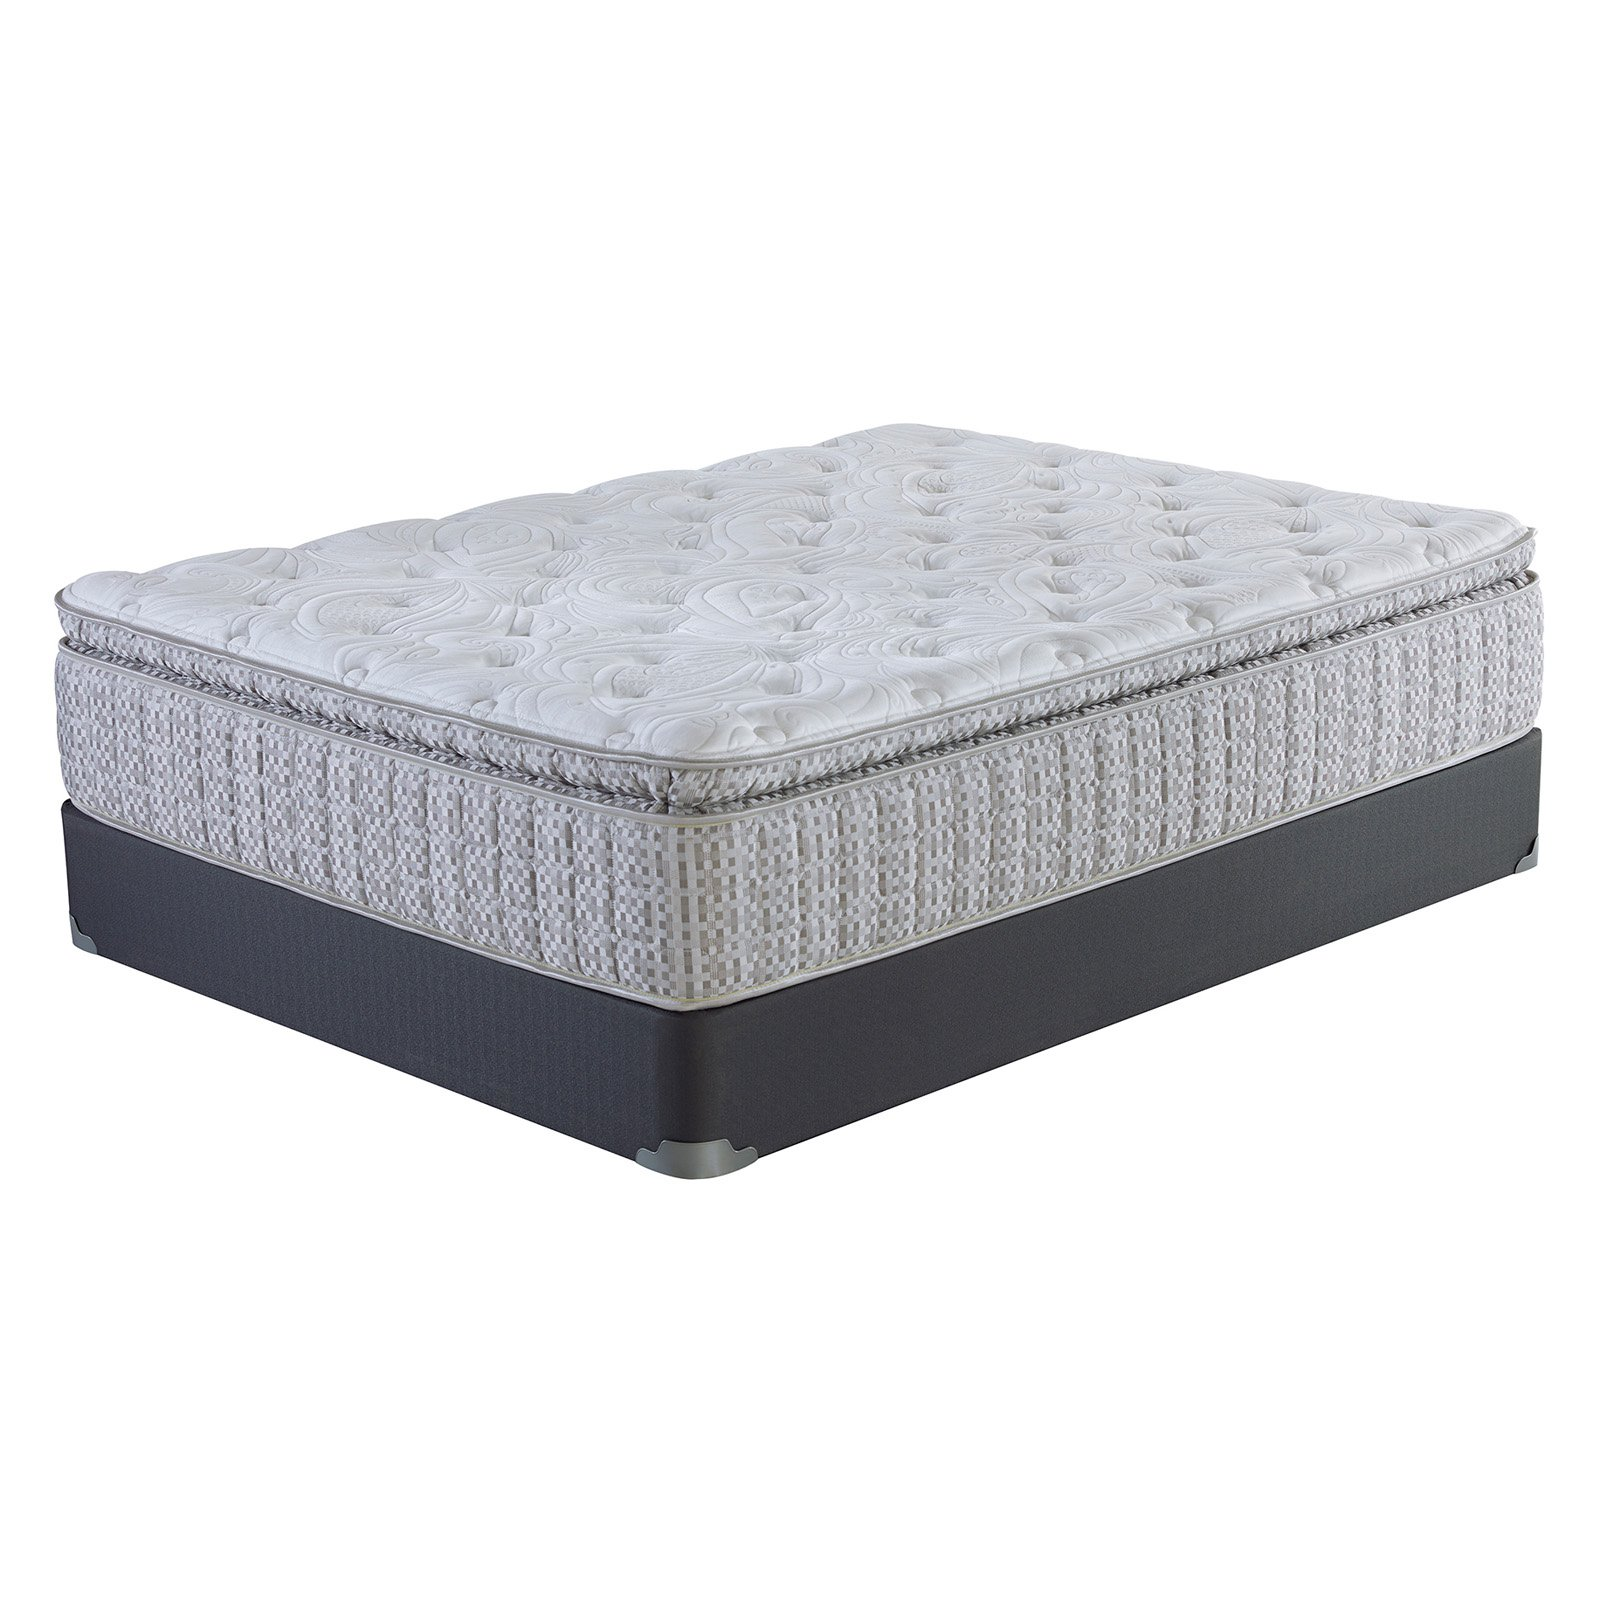 Homestead Select 14.5 in. Pillow Top Adjustable Base Compatible Mattress with Advanced Performance Memory Foam and Pocket Springs